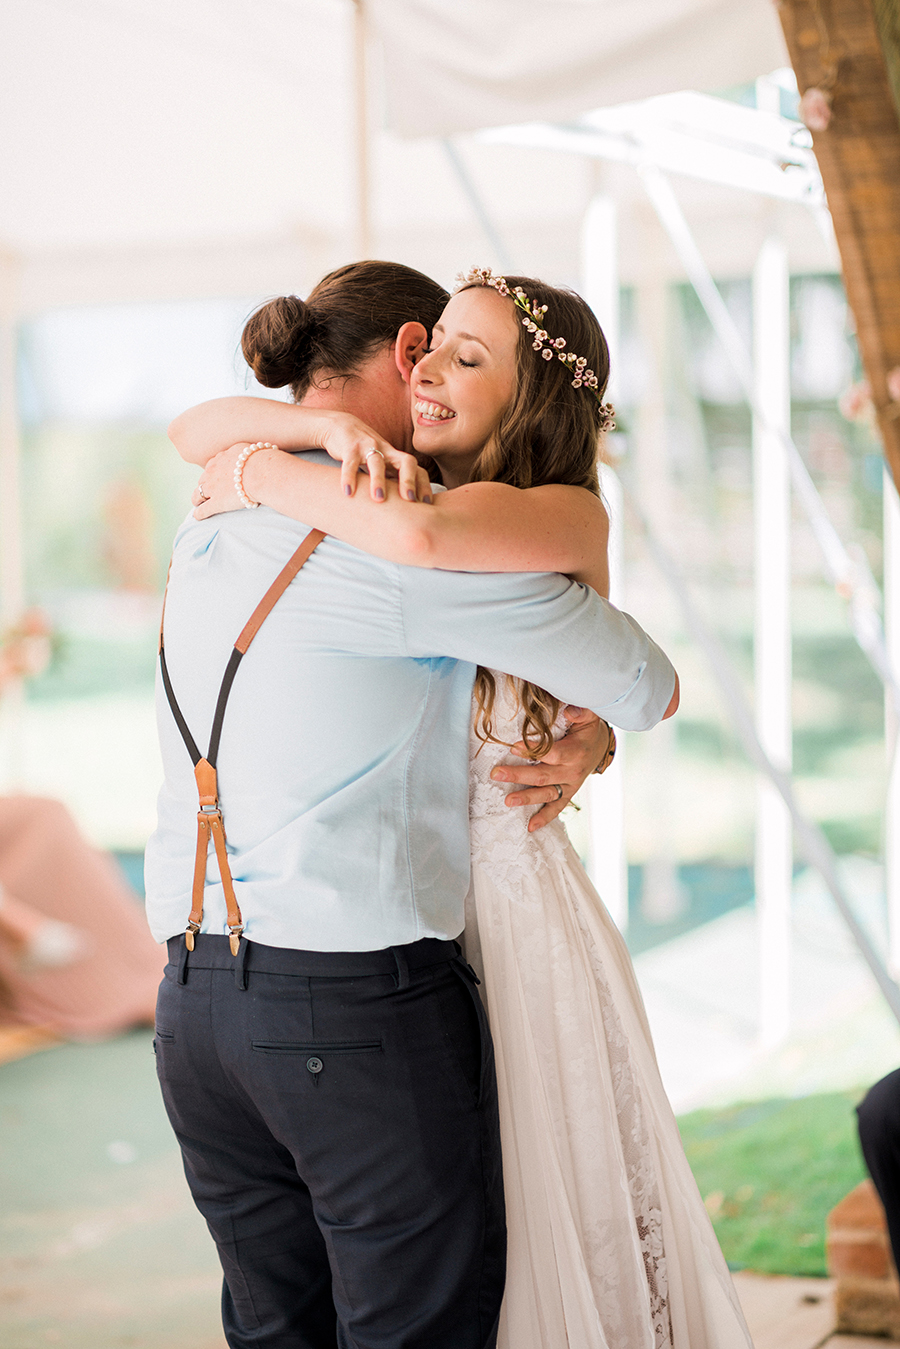 Dreamy boho wedding at Houchins Farm with images by Kathryn Hopkins Photography (10)